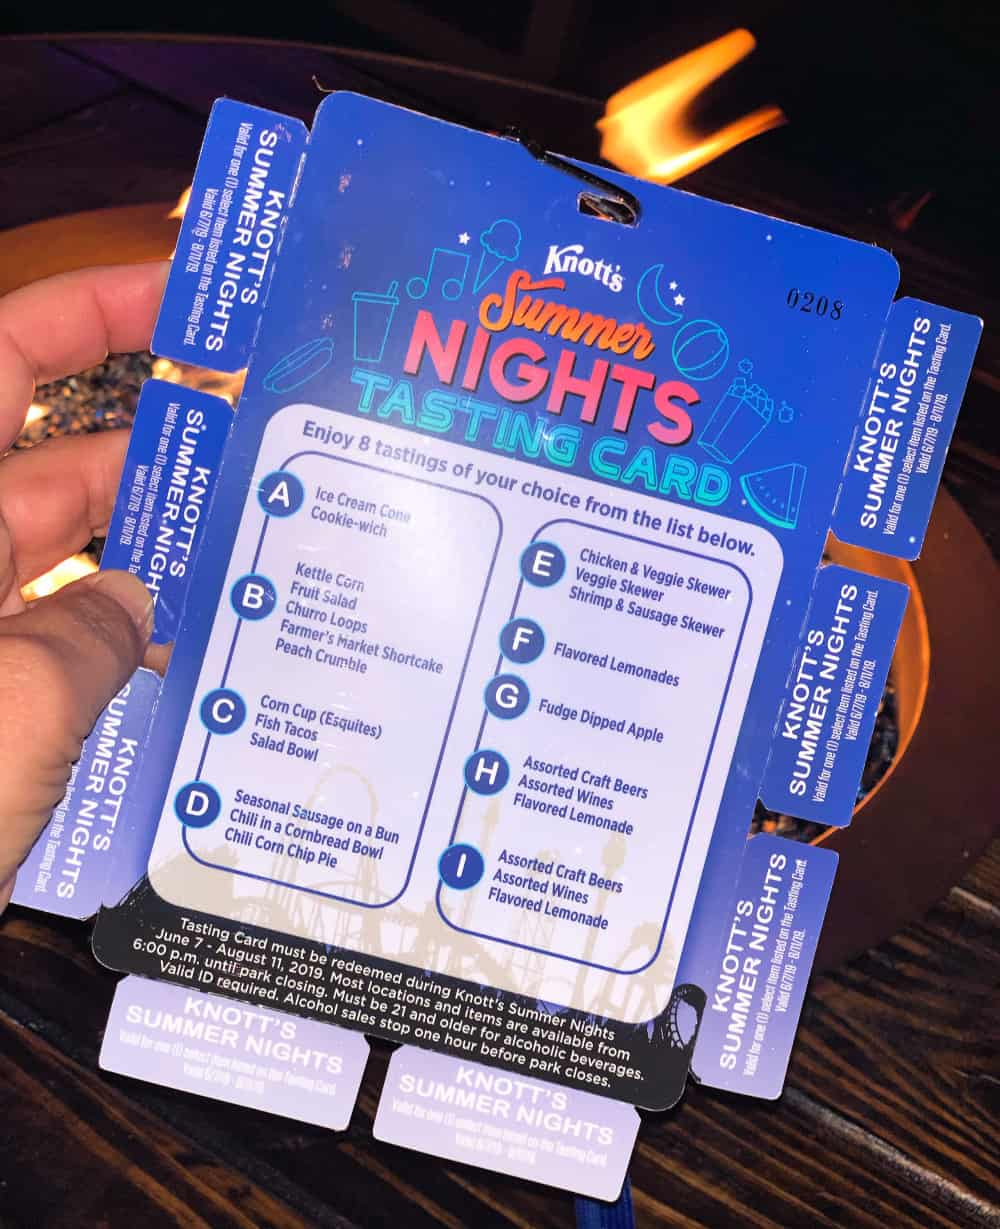 Knott's Summer Nights Taste Card